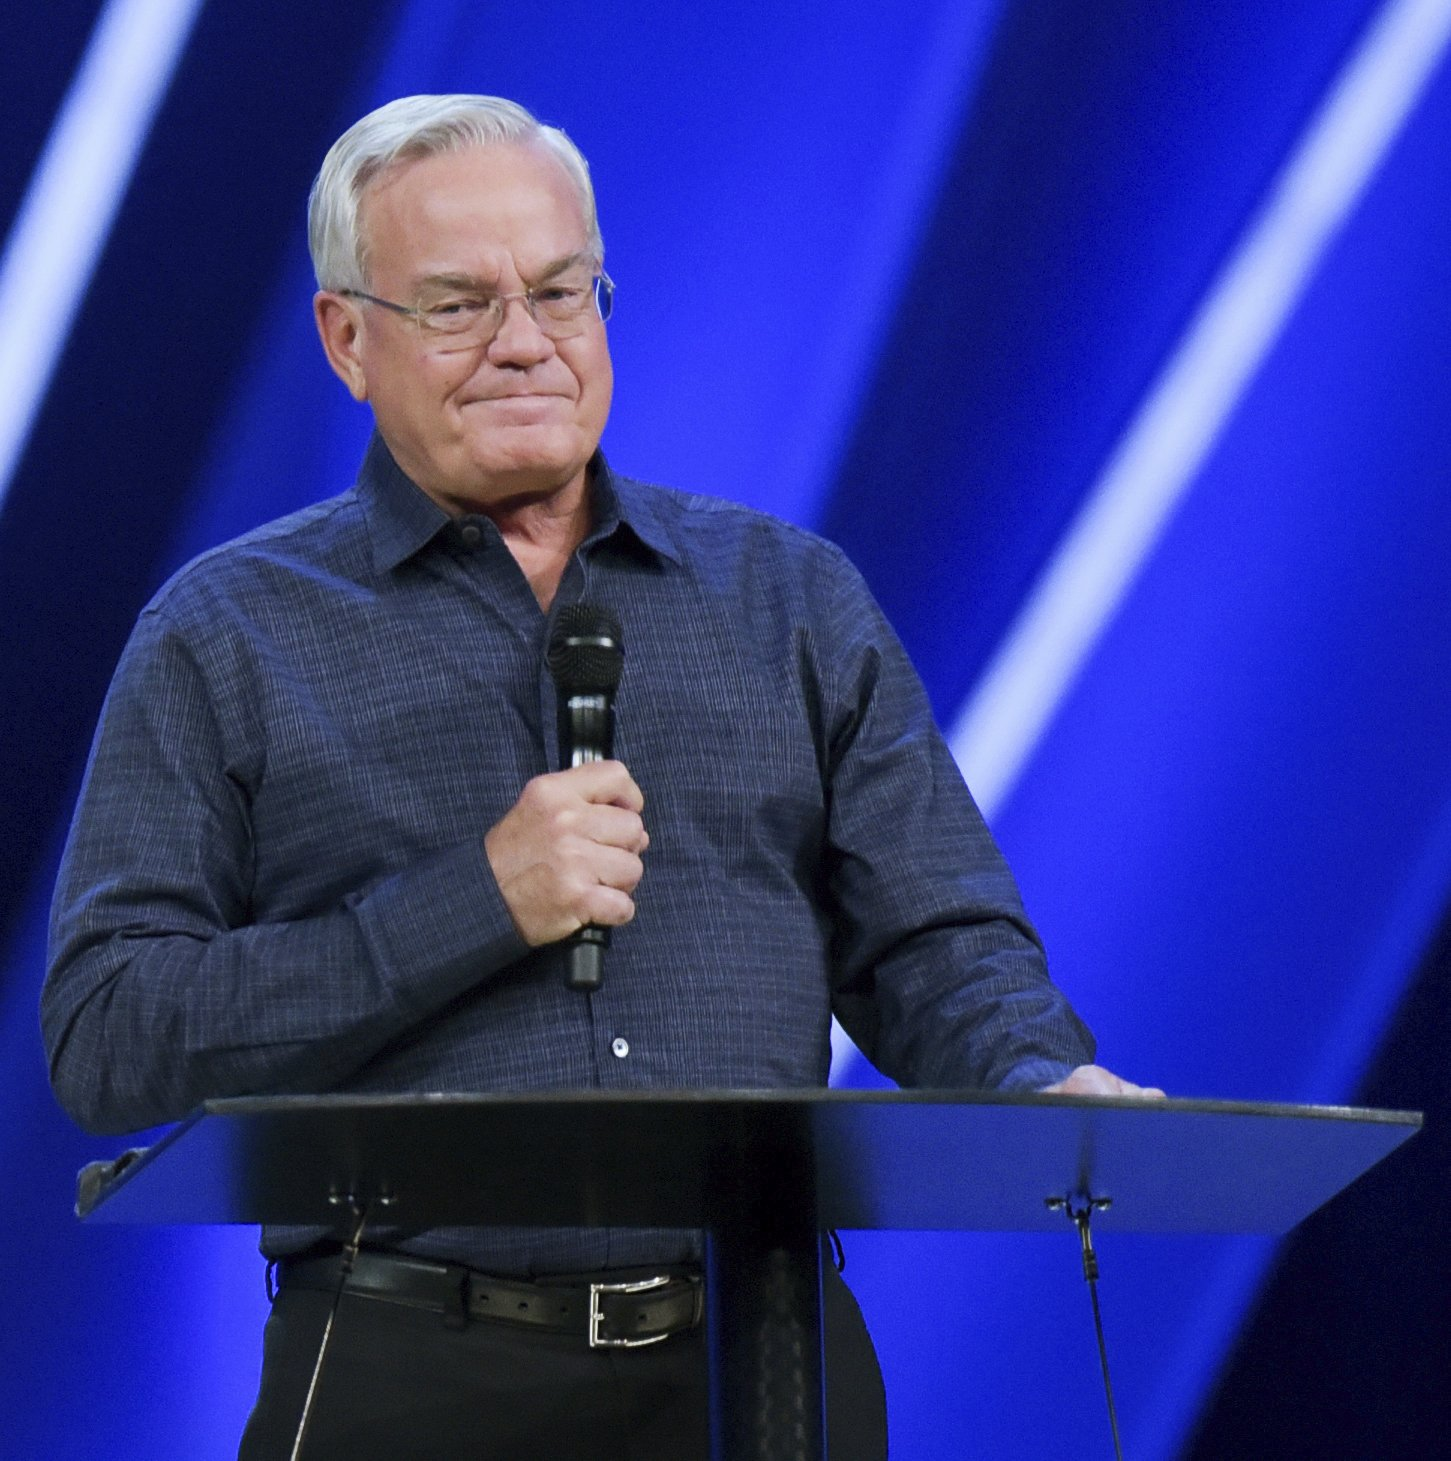 Megachurch founder quits amid sexual misconduct allegations